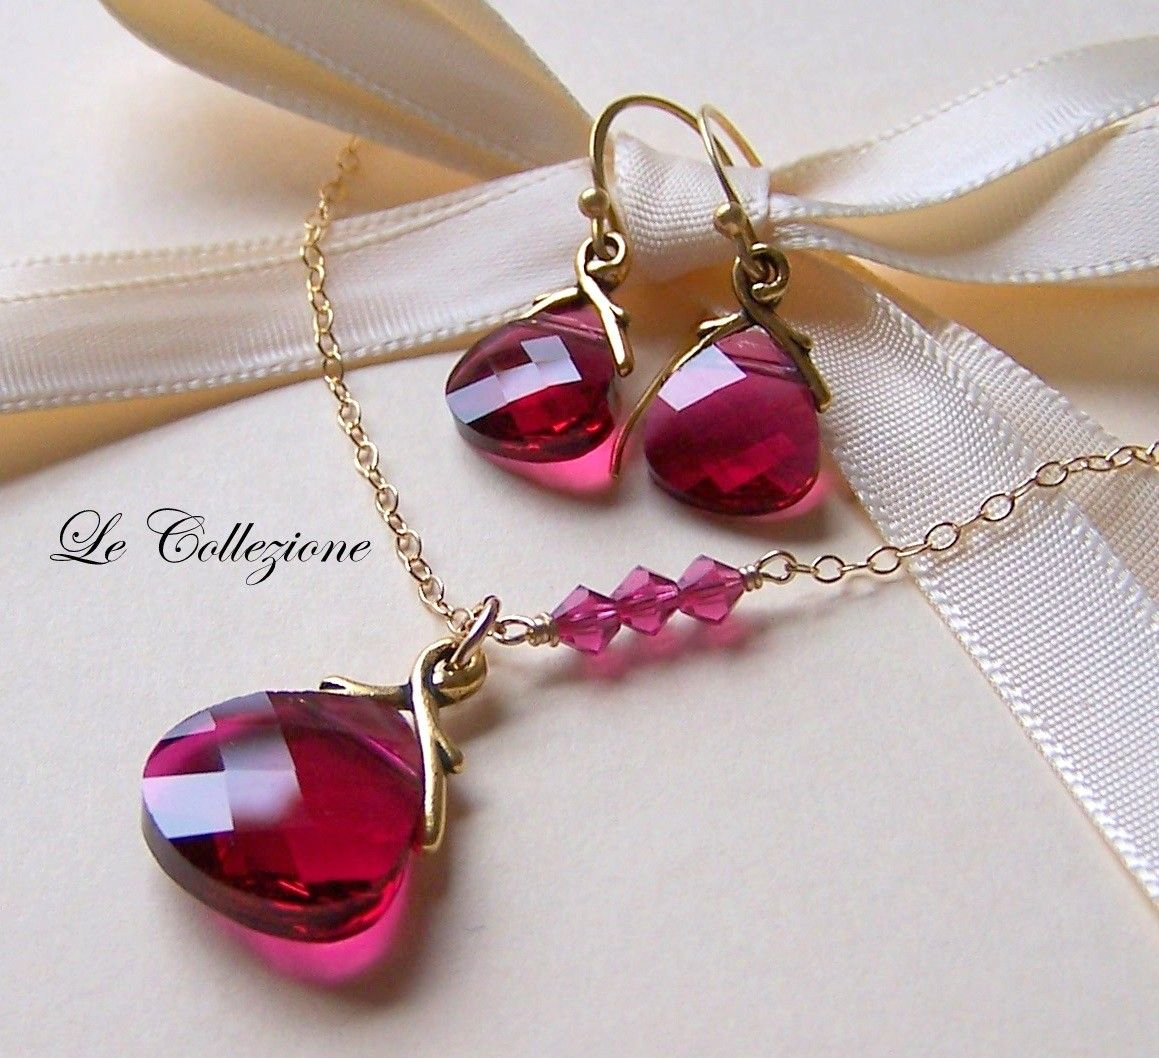 Brides Bridesmaids  Necklace And Earrings Set, Exquisite Ruby Swarovski  Crystal And 14k Gold Filled